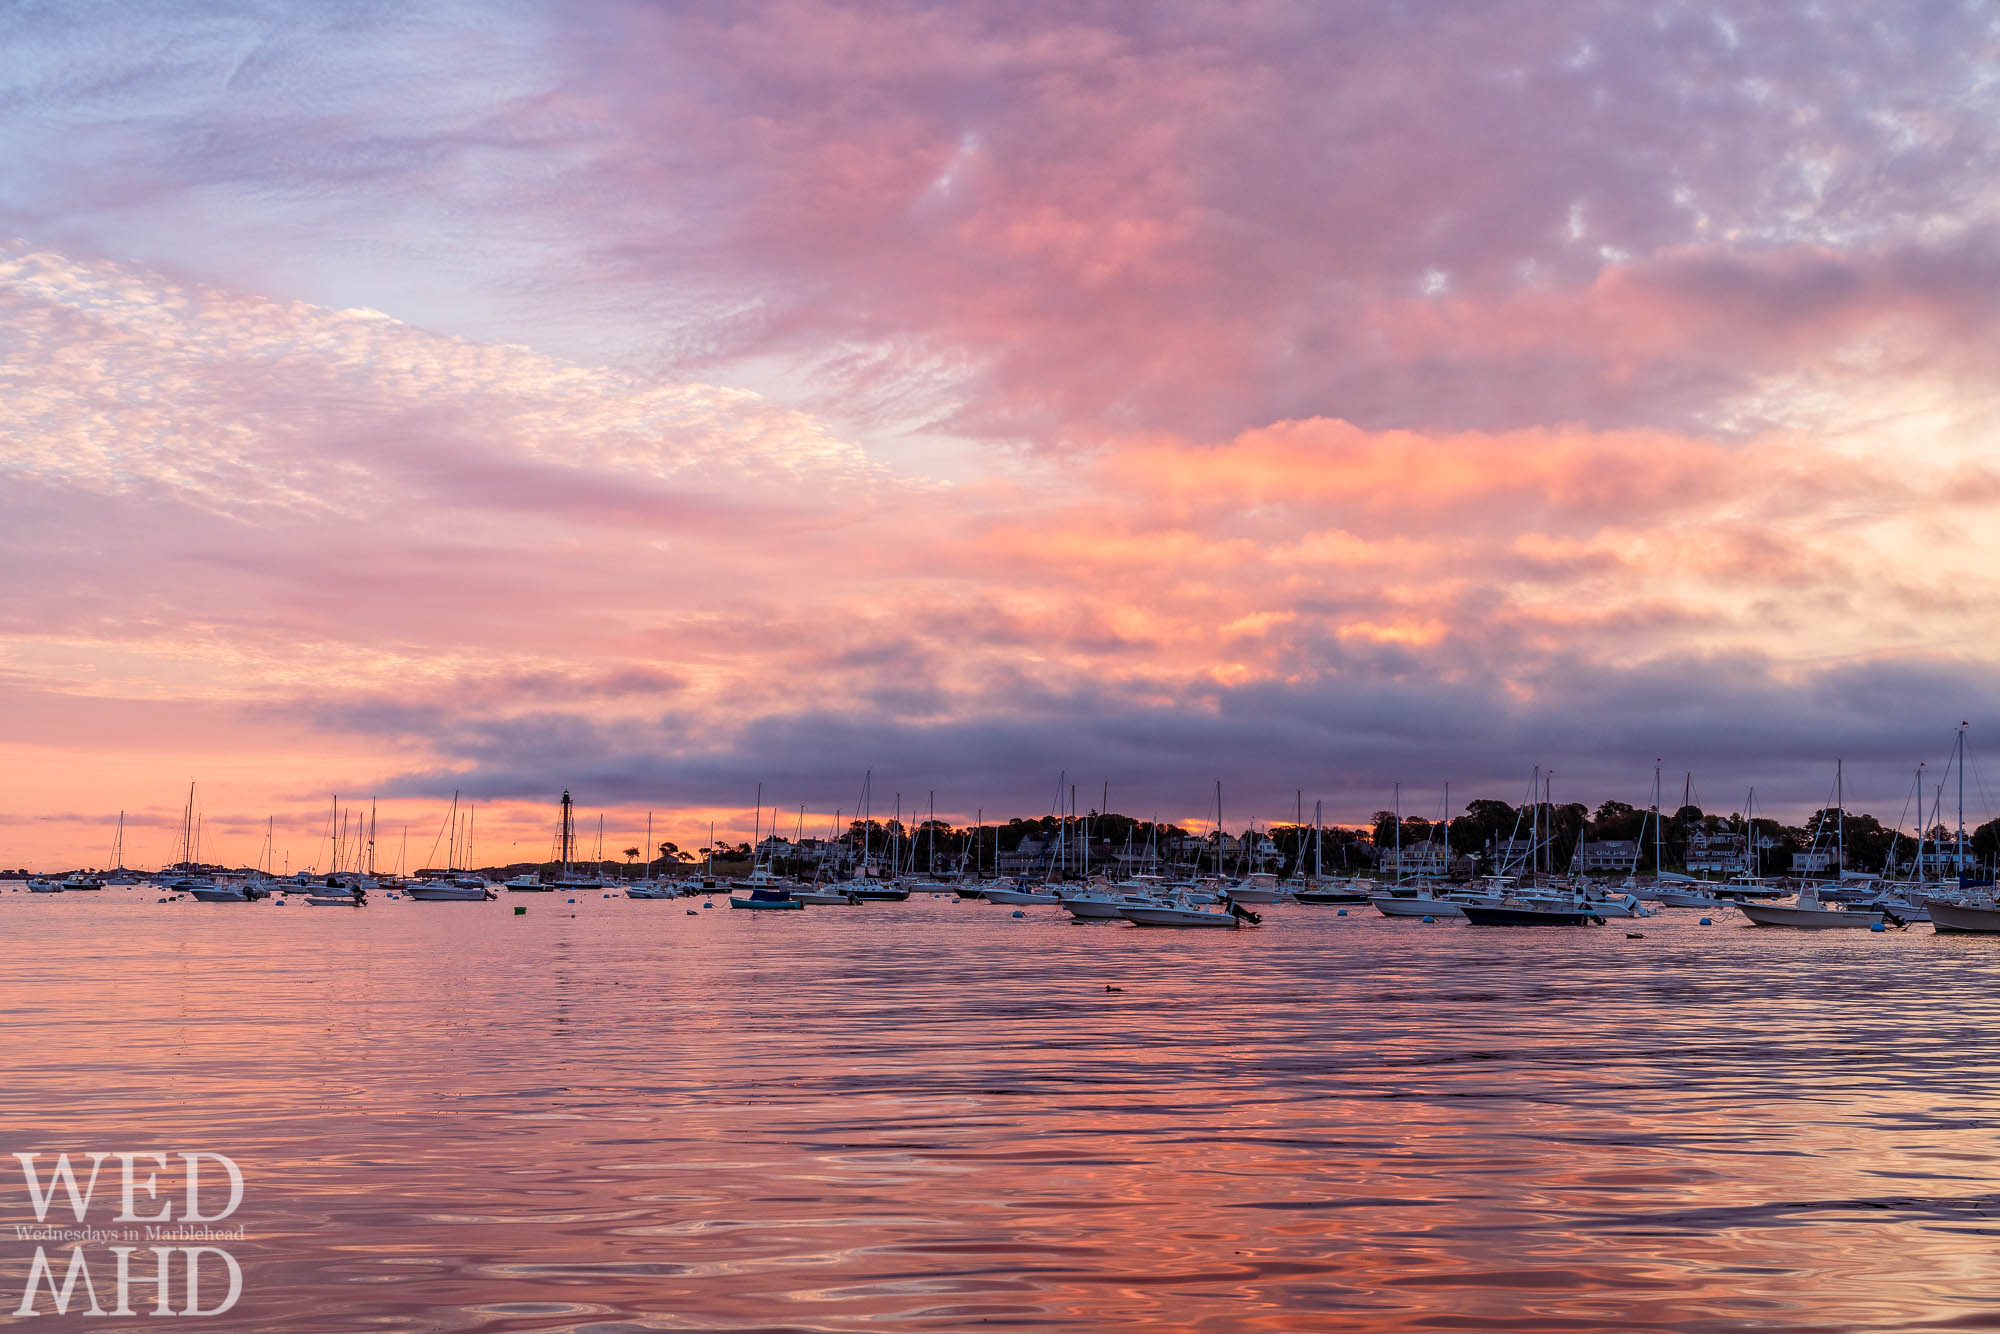 A gameday sunrise forms over Marblehead Harbor still filled with boats on this early October morning with a storm headed our way